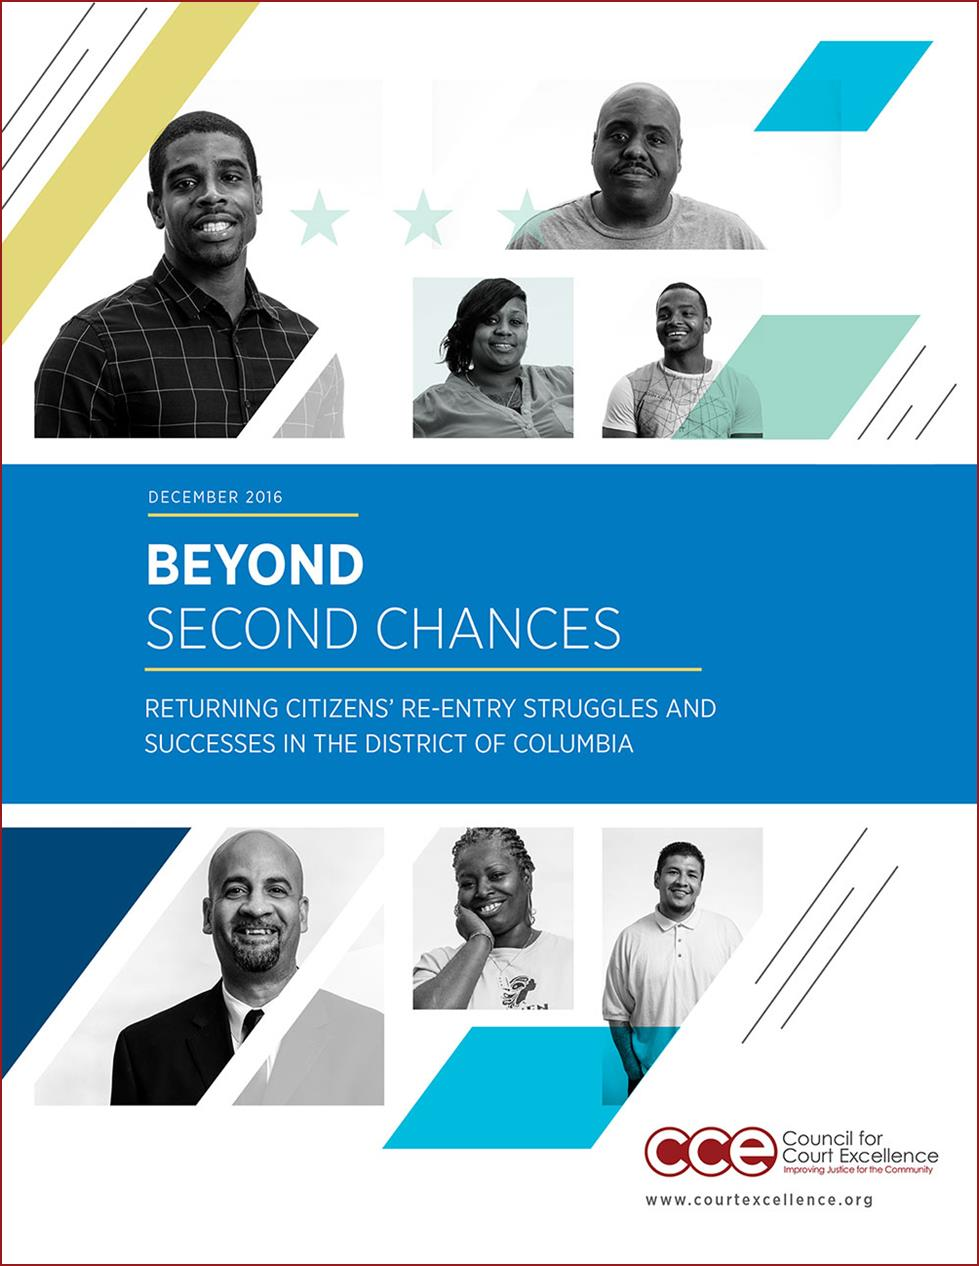 Beyond Second Chances: Returning Citizens' Re-entry Struggles and Successes in the District of Columbia